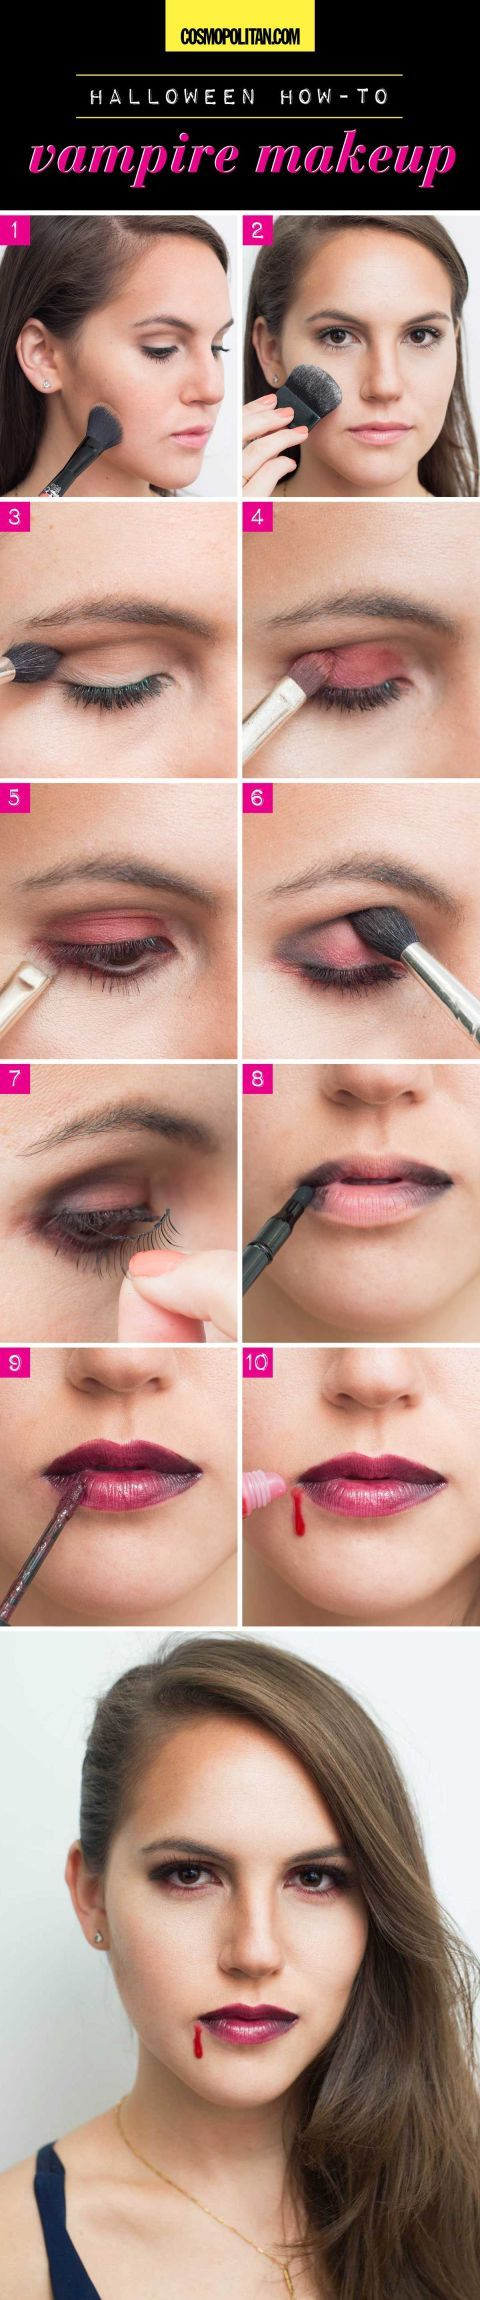 8 Easy Halloween Makeup Ideas - Halloween Makeup Tutorials With Makeup You Already Have